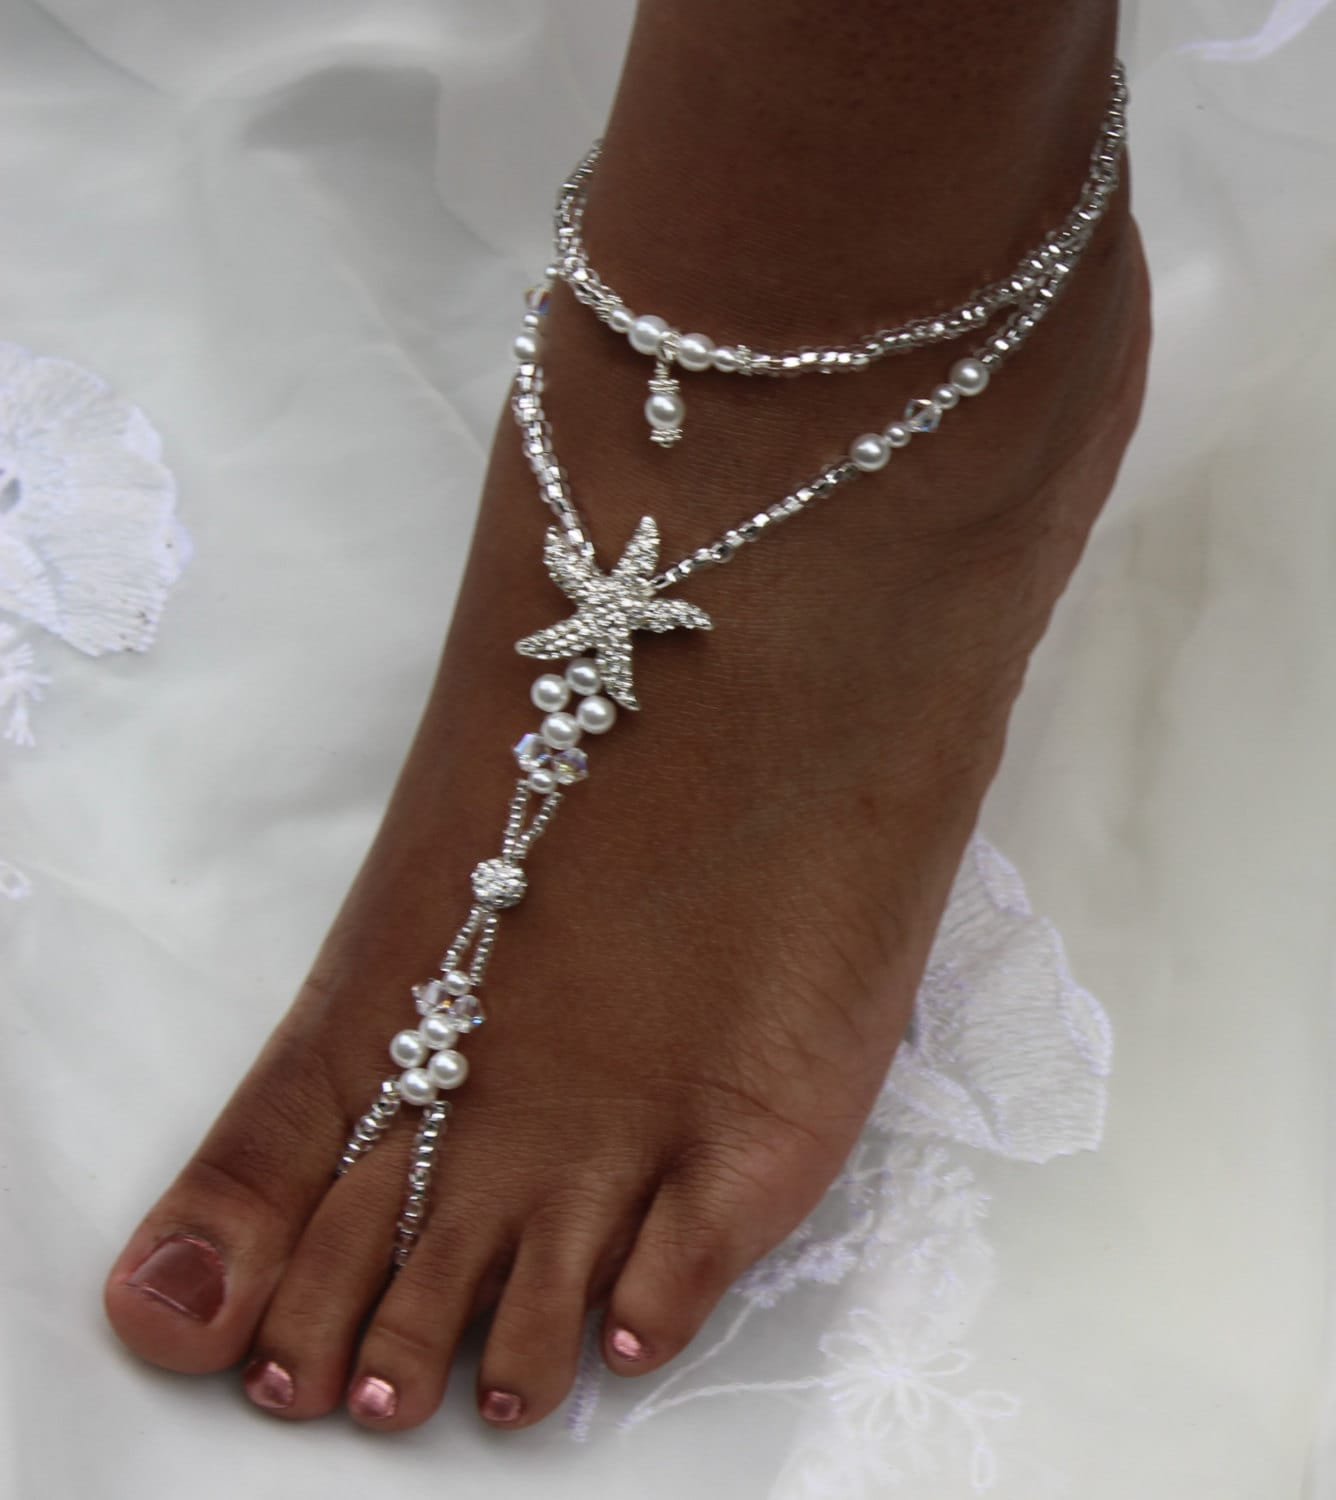 ankle com jewelry piece beach bracelet anklets foot sandals barefoot anklet starfish dp amazon wedding bienvenu